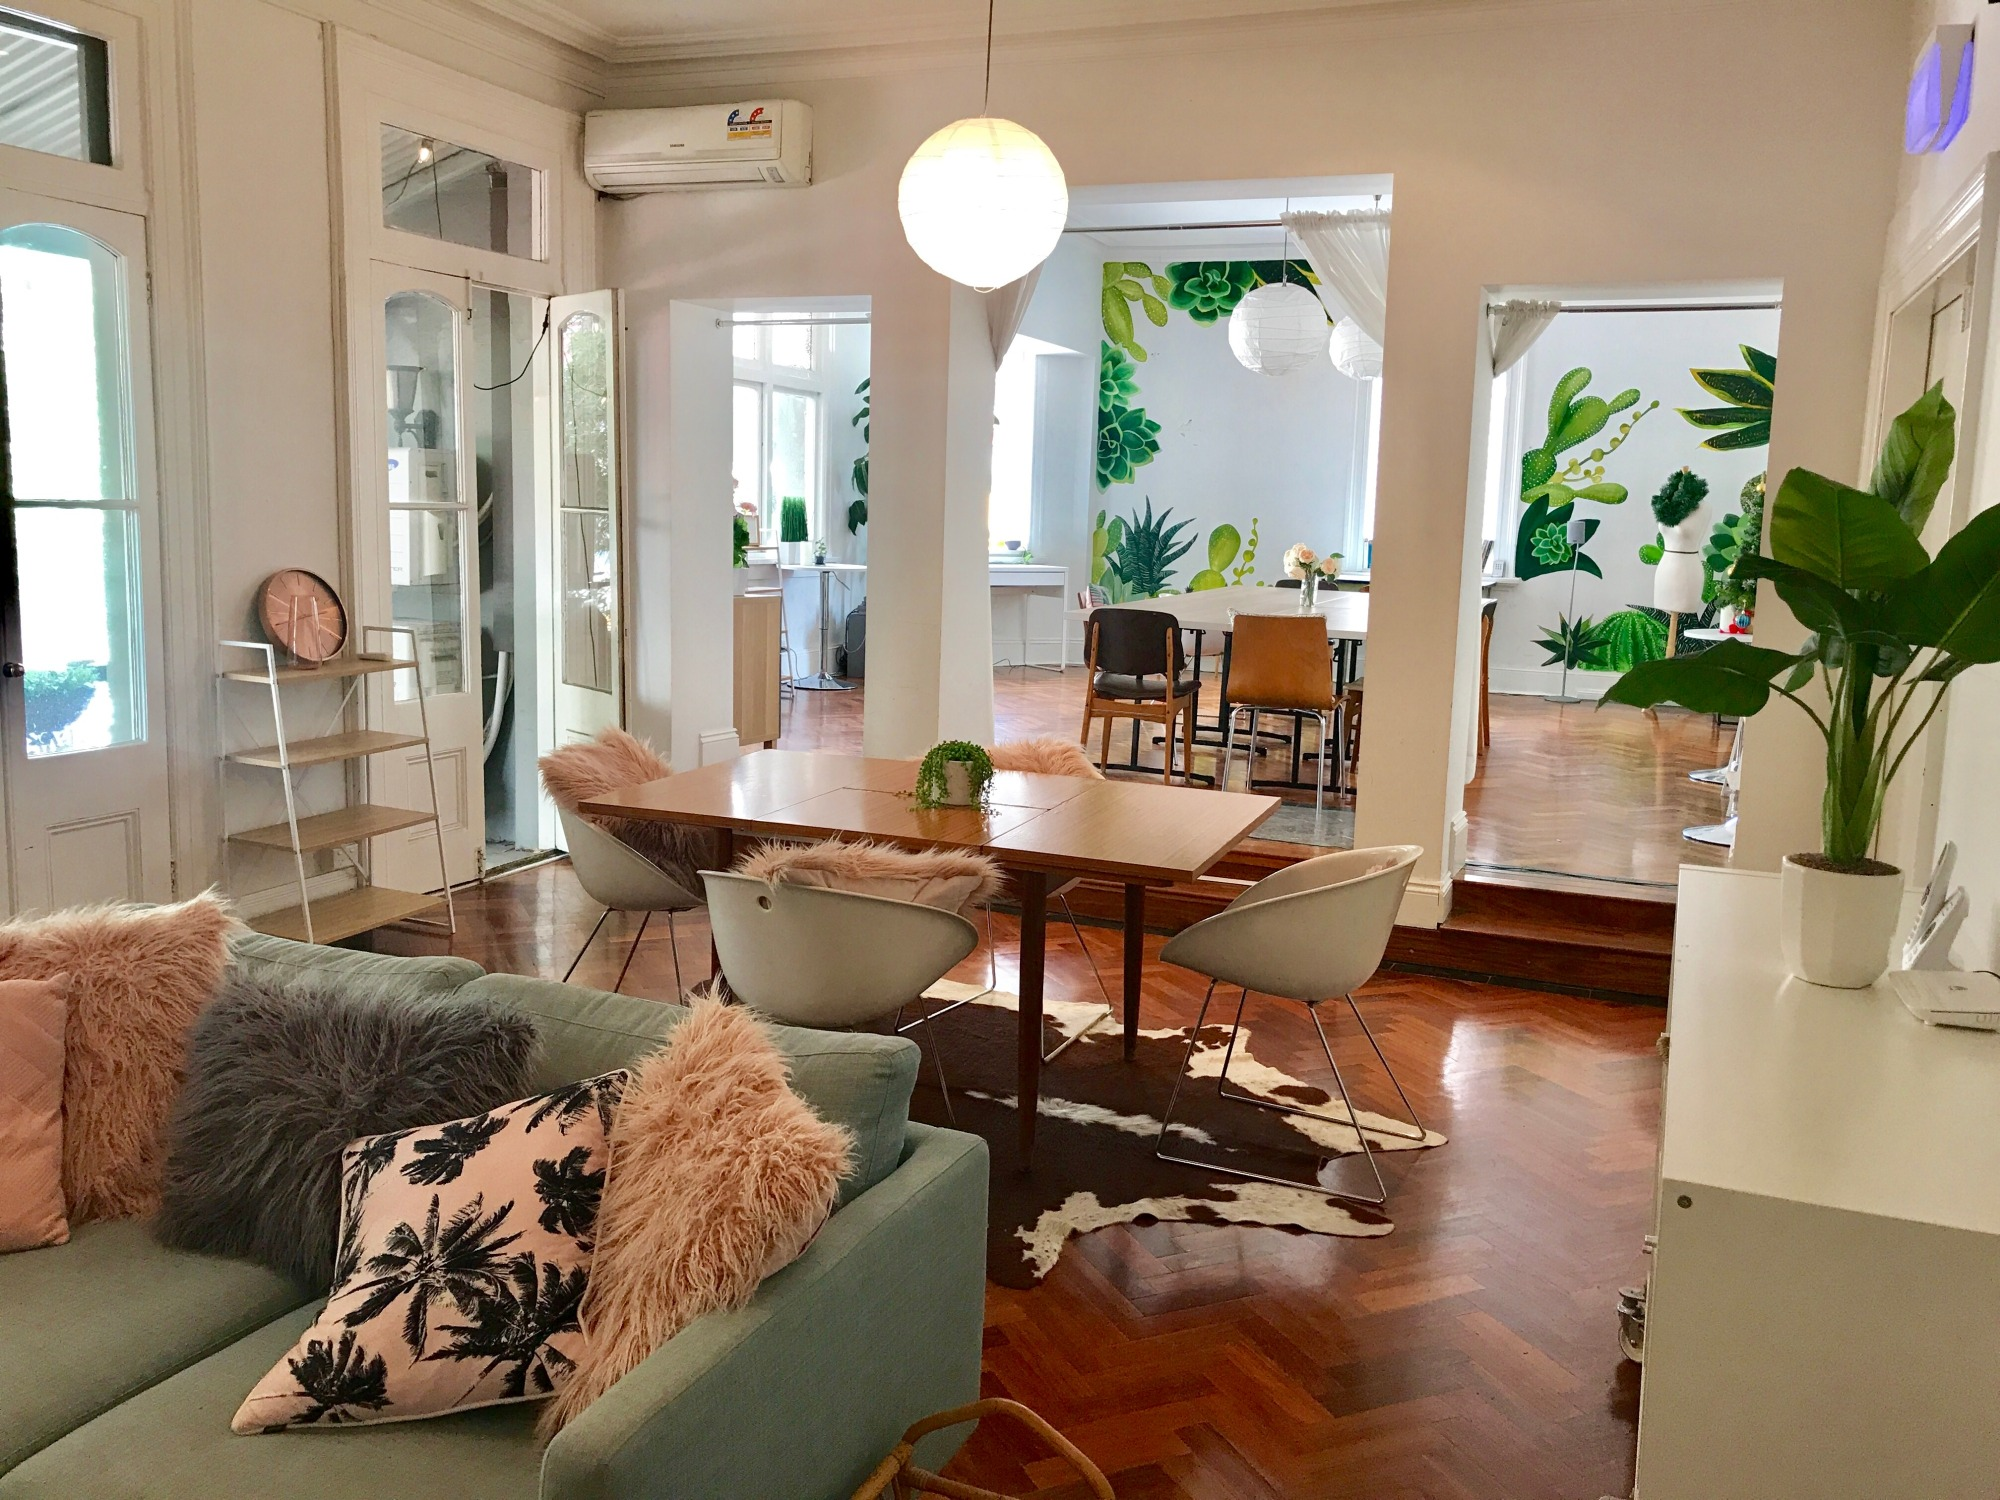 THE BALCONY ROOM & THE LIVING ROOM - View Gallery